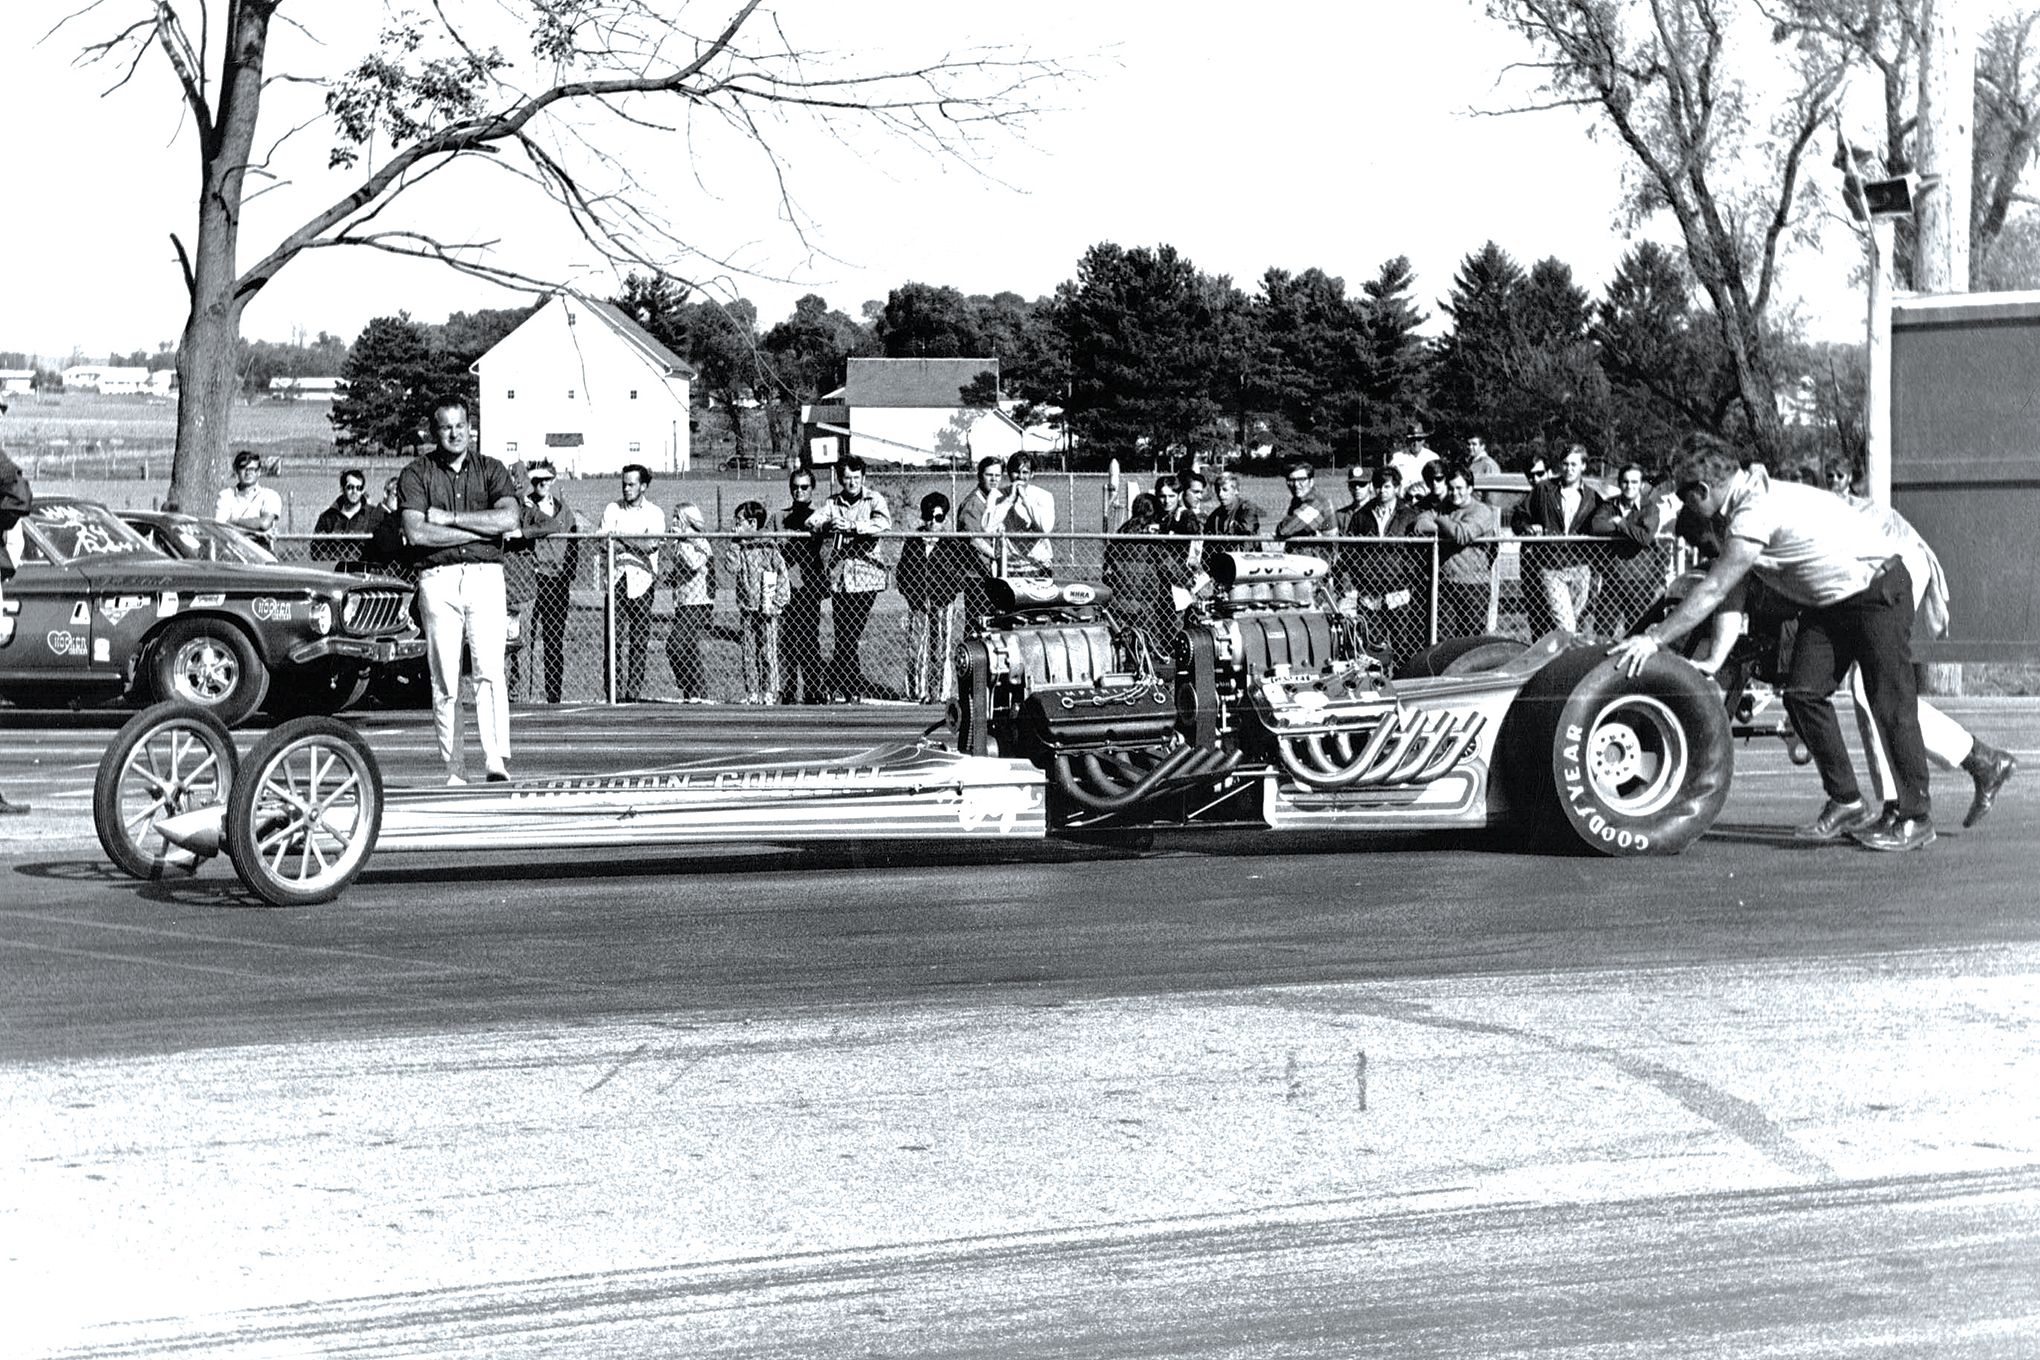 As far as we know, the only woman to drive one of these beasts (in this case, Gordon Collett's tandem car) was none other than Shirley Muldowney. She did so at the infamous Union Grove Dragway just north of downtown Chicago.